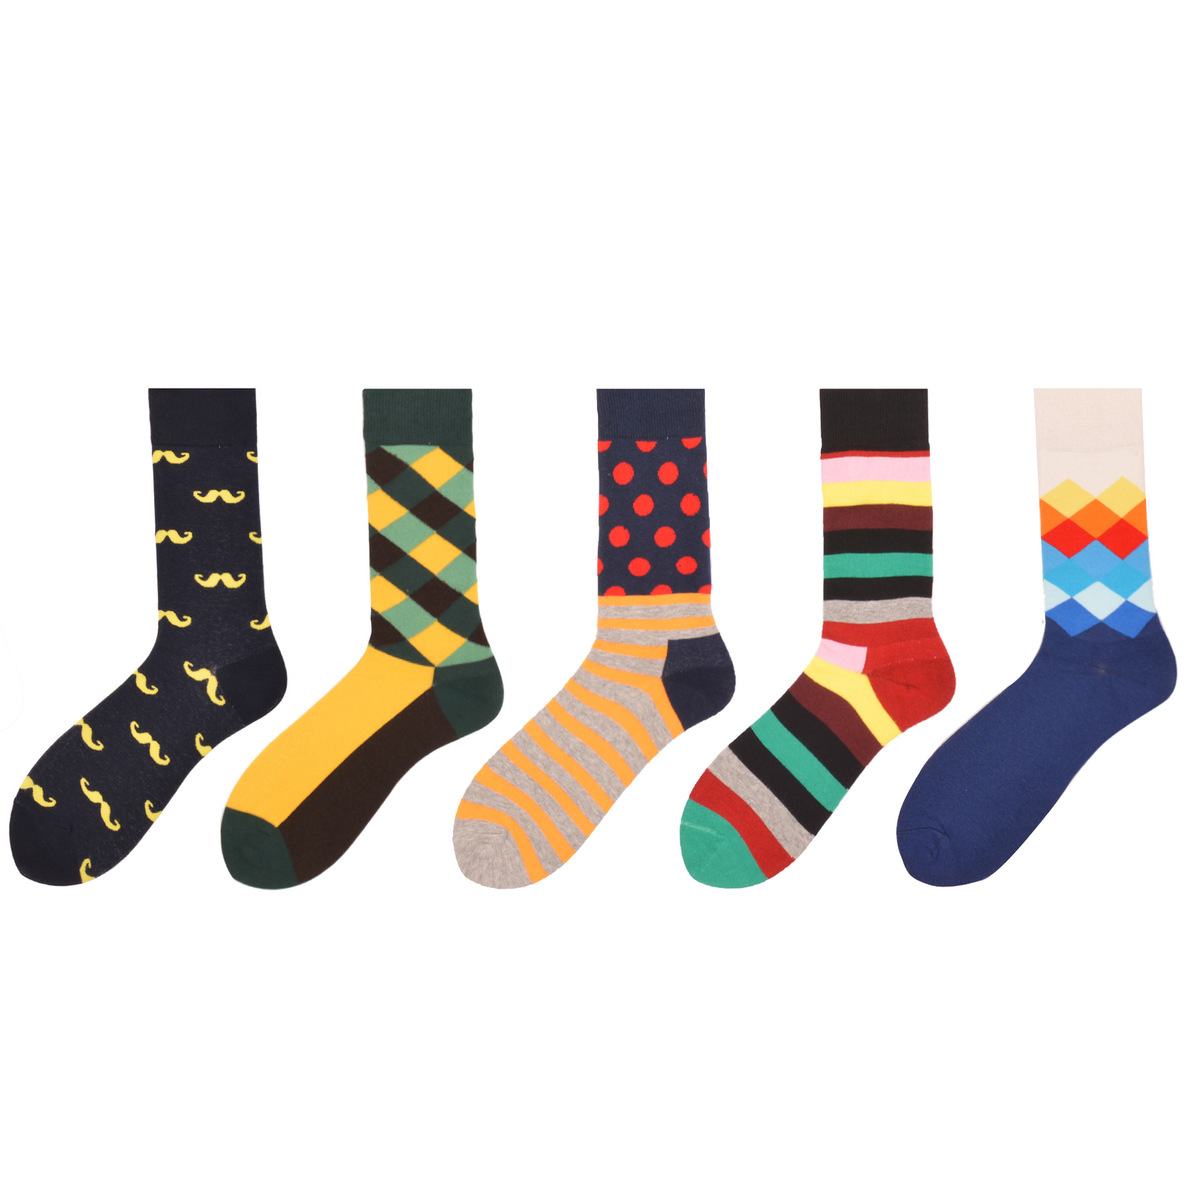 PEONFLY 5 Pairs/lot Funny Casual Chaussette Homme Crew Diamond Argyle Colorful Mens Dress Socks Combed Cotton Happy Socks